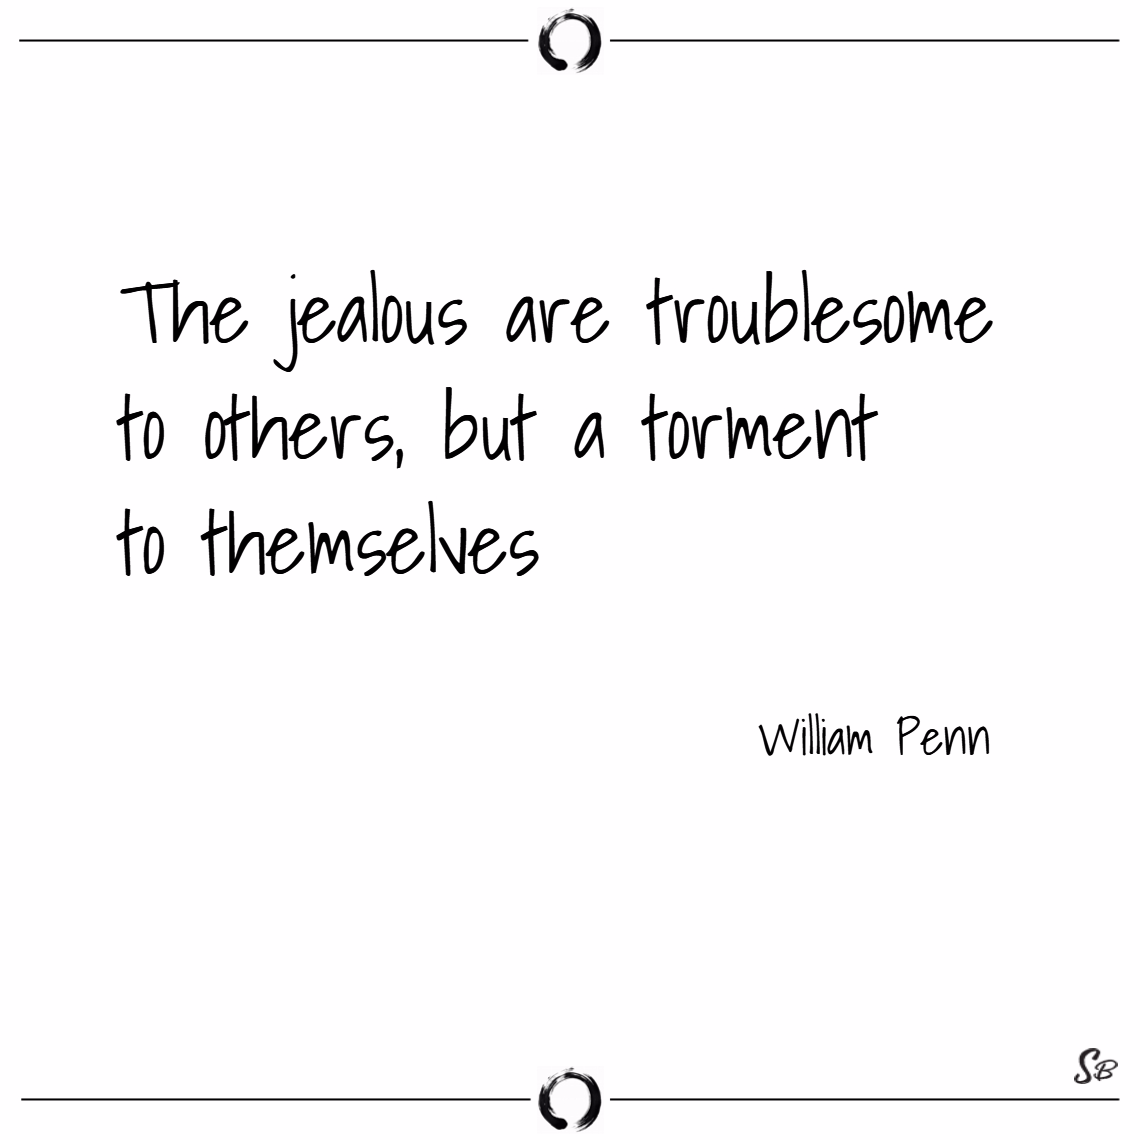 The jealous are troublesome to others, but a torment to themselves. – william penn